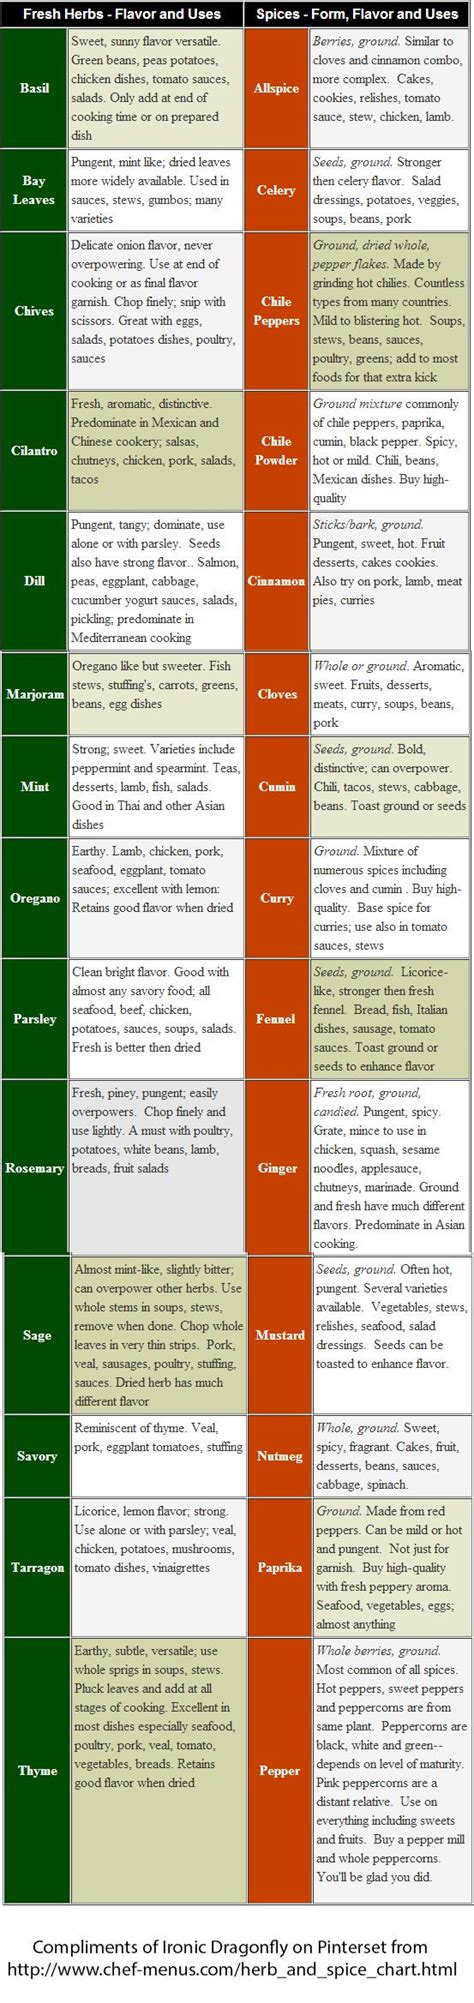 herb chart herb spice chart i redid to an image really good